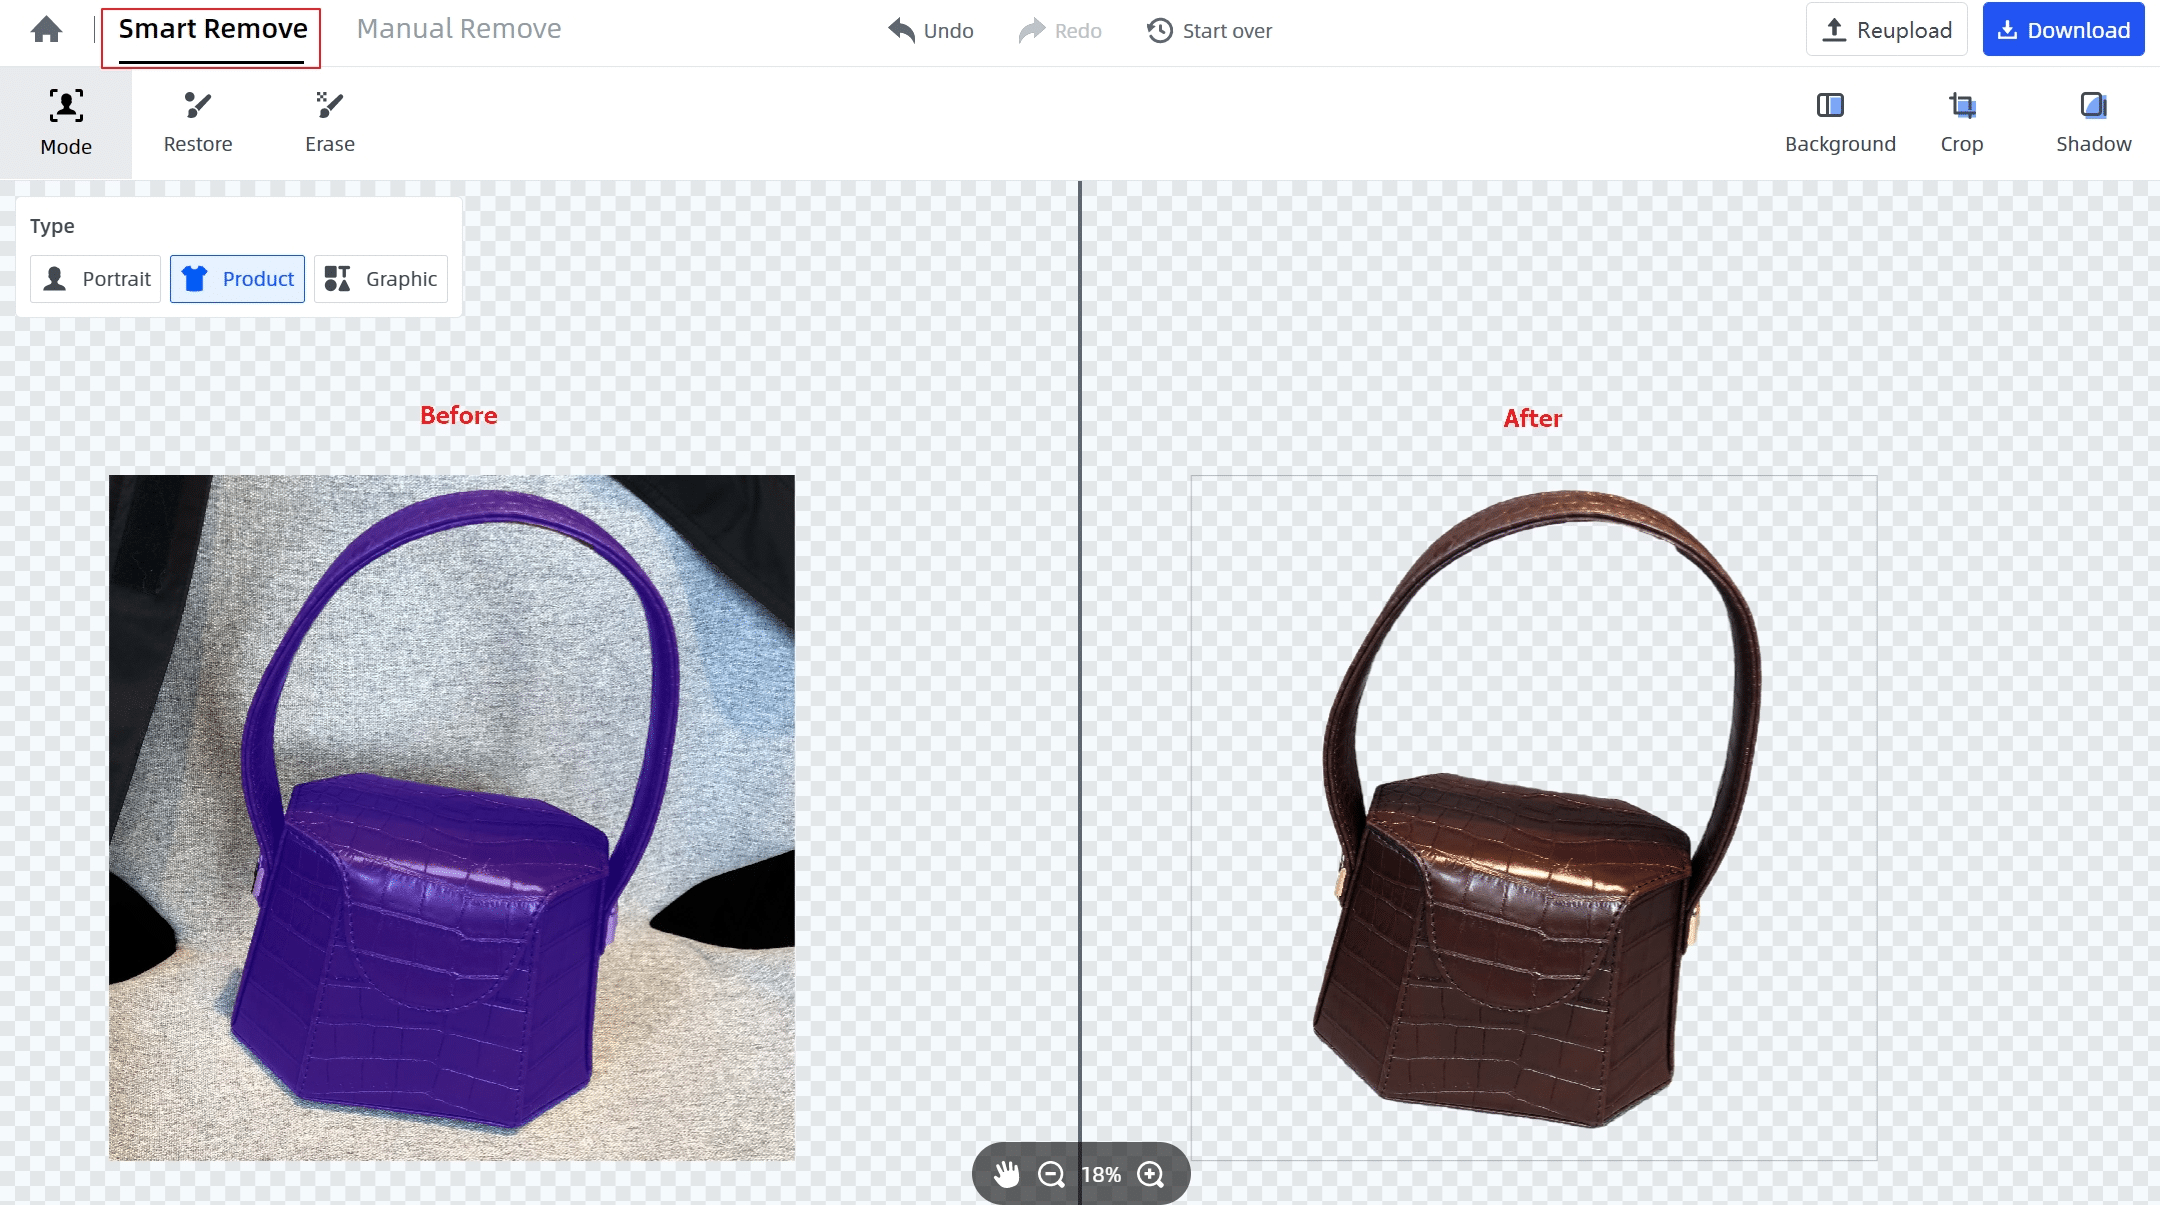 how-to-remove-background-automatically-fococlipping-smart-remove.png